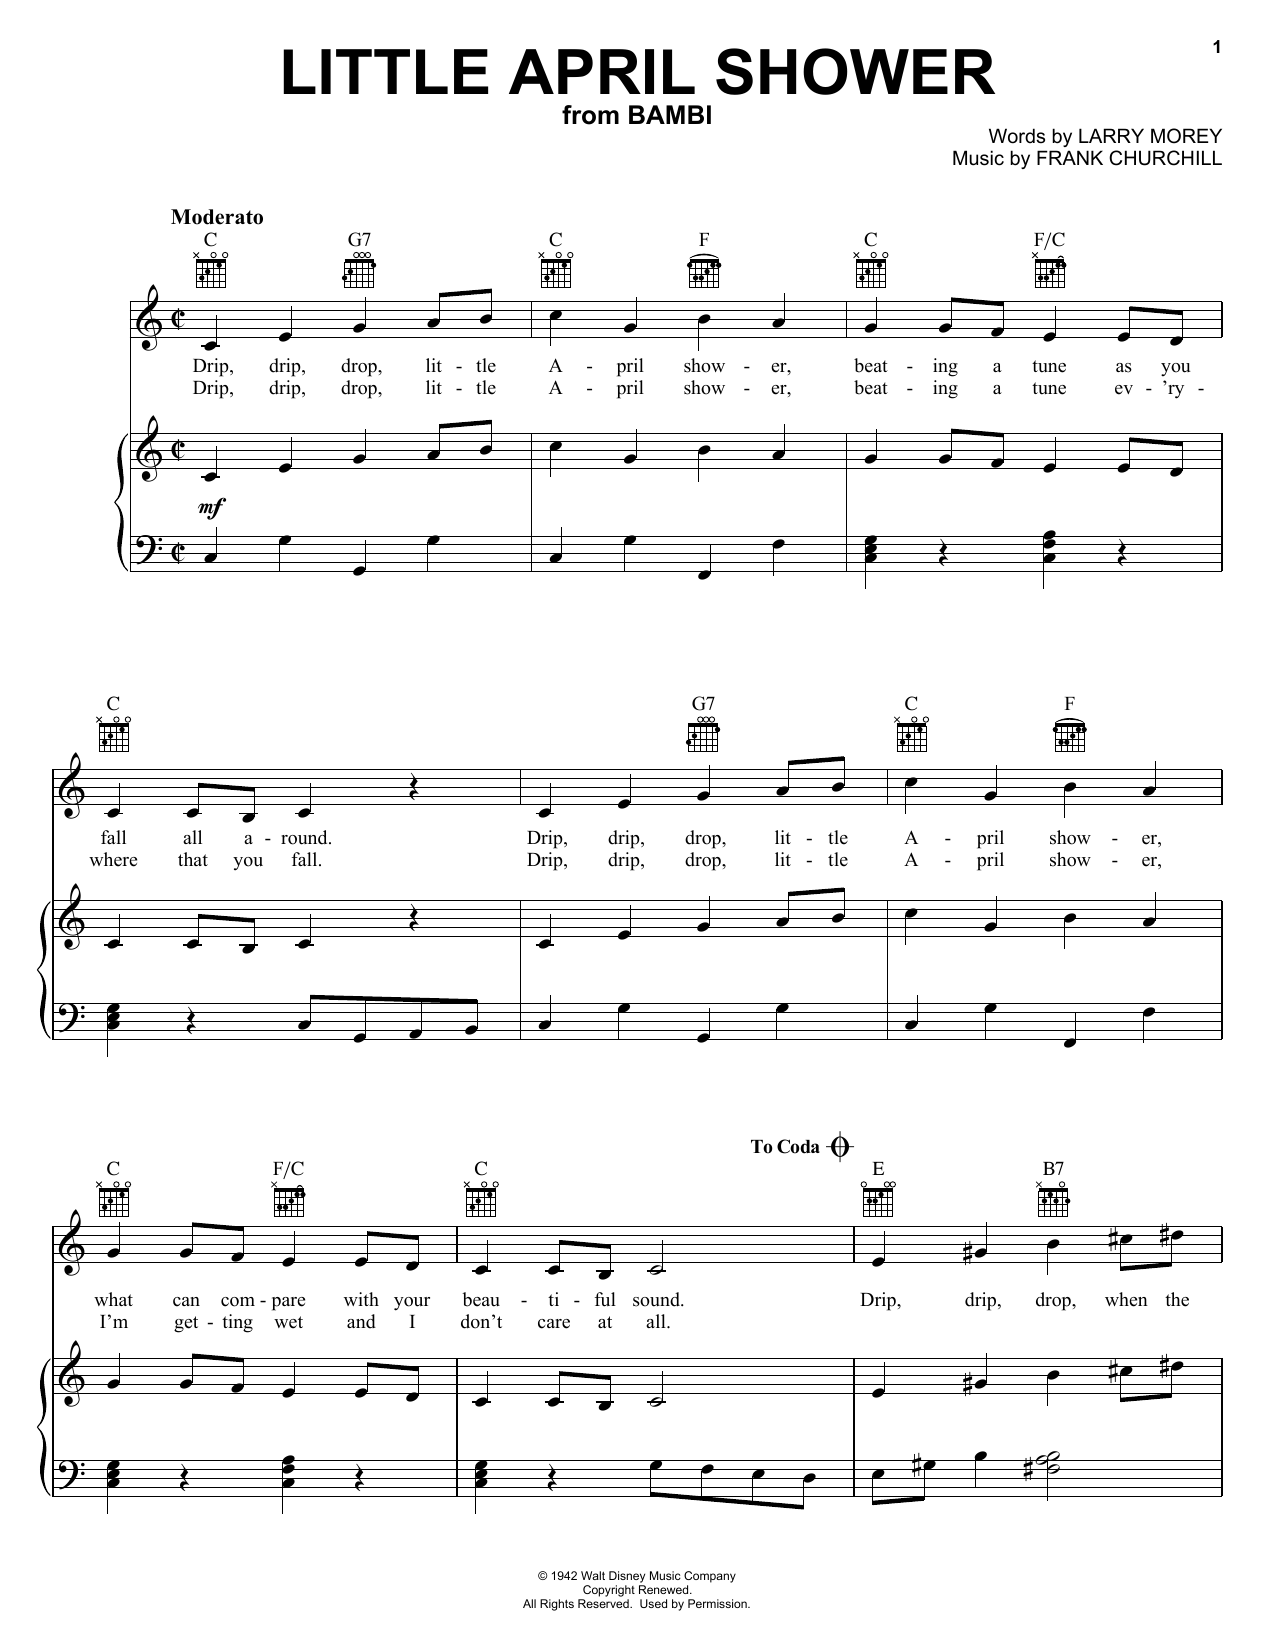 Frank Churchill Little April Shower sheet music notes and chords. Download Printable PDF.